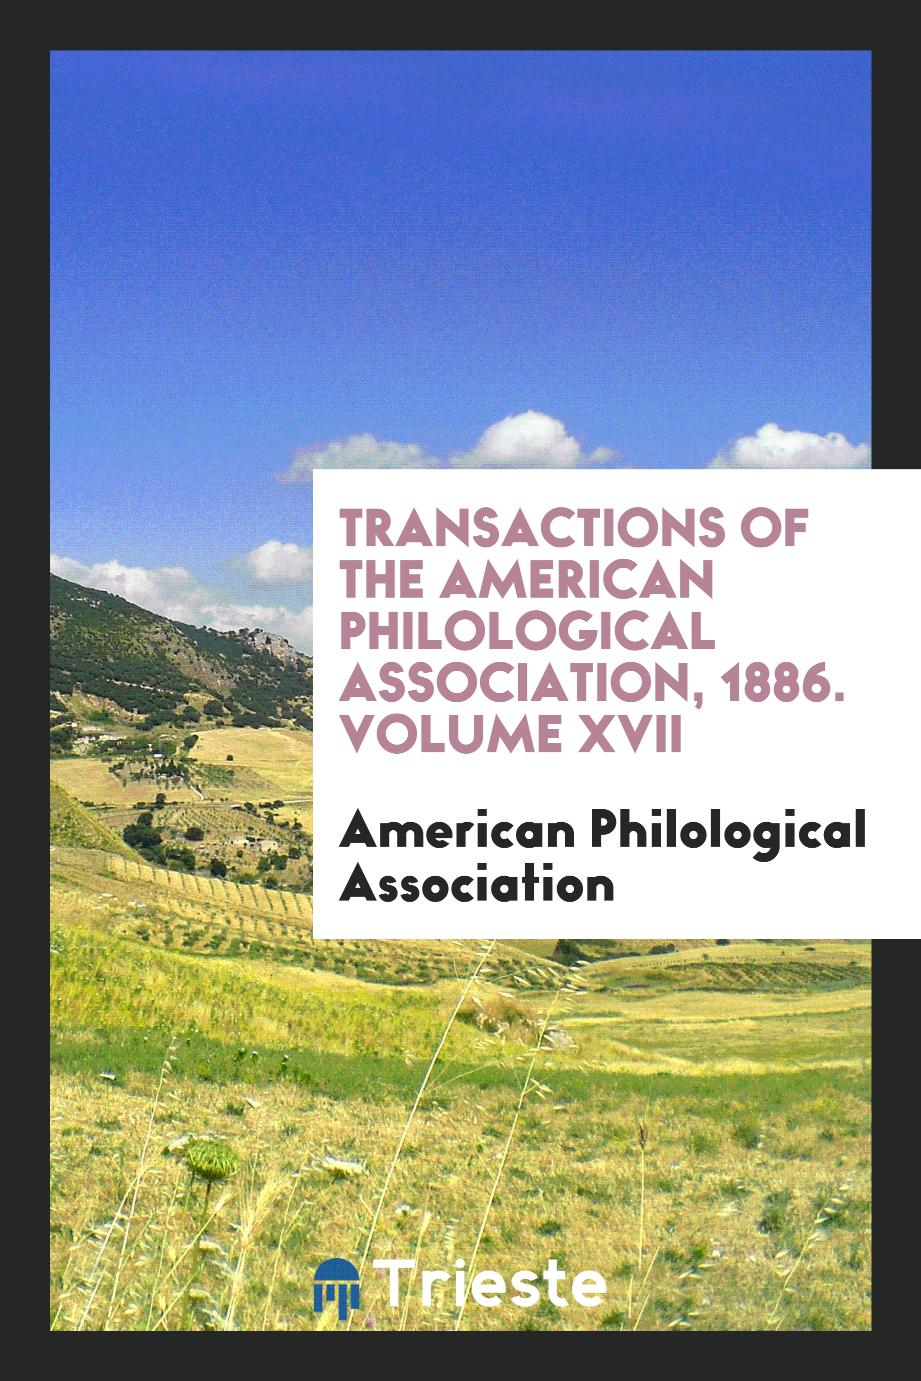 Transactions of the American Philological Association, 1886. Volume XVII